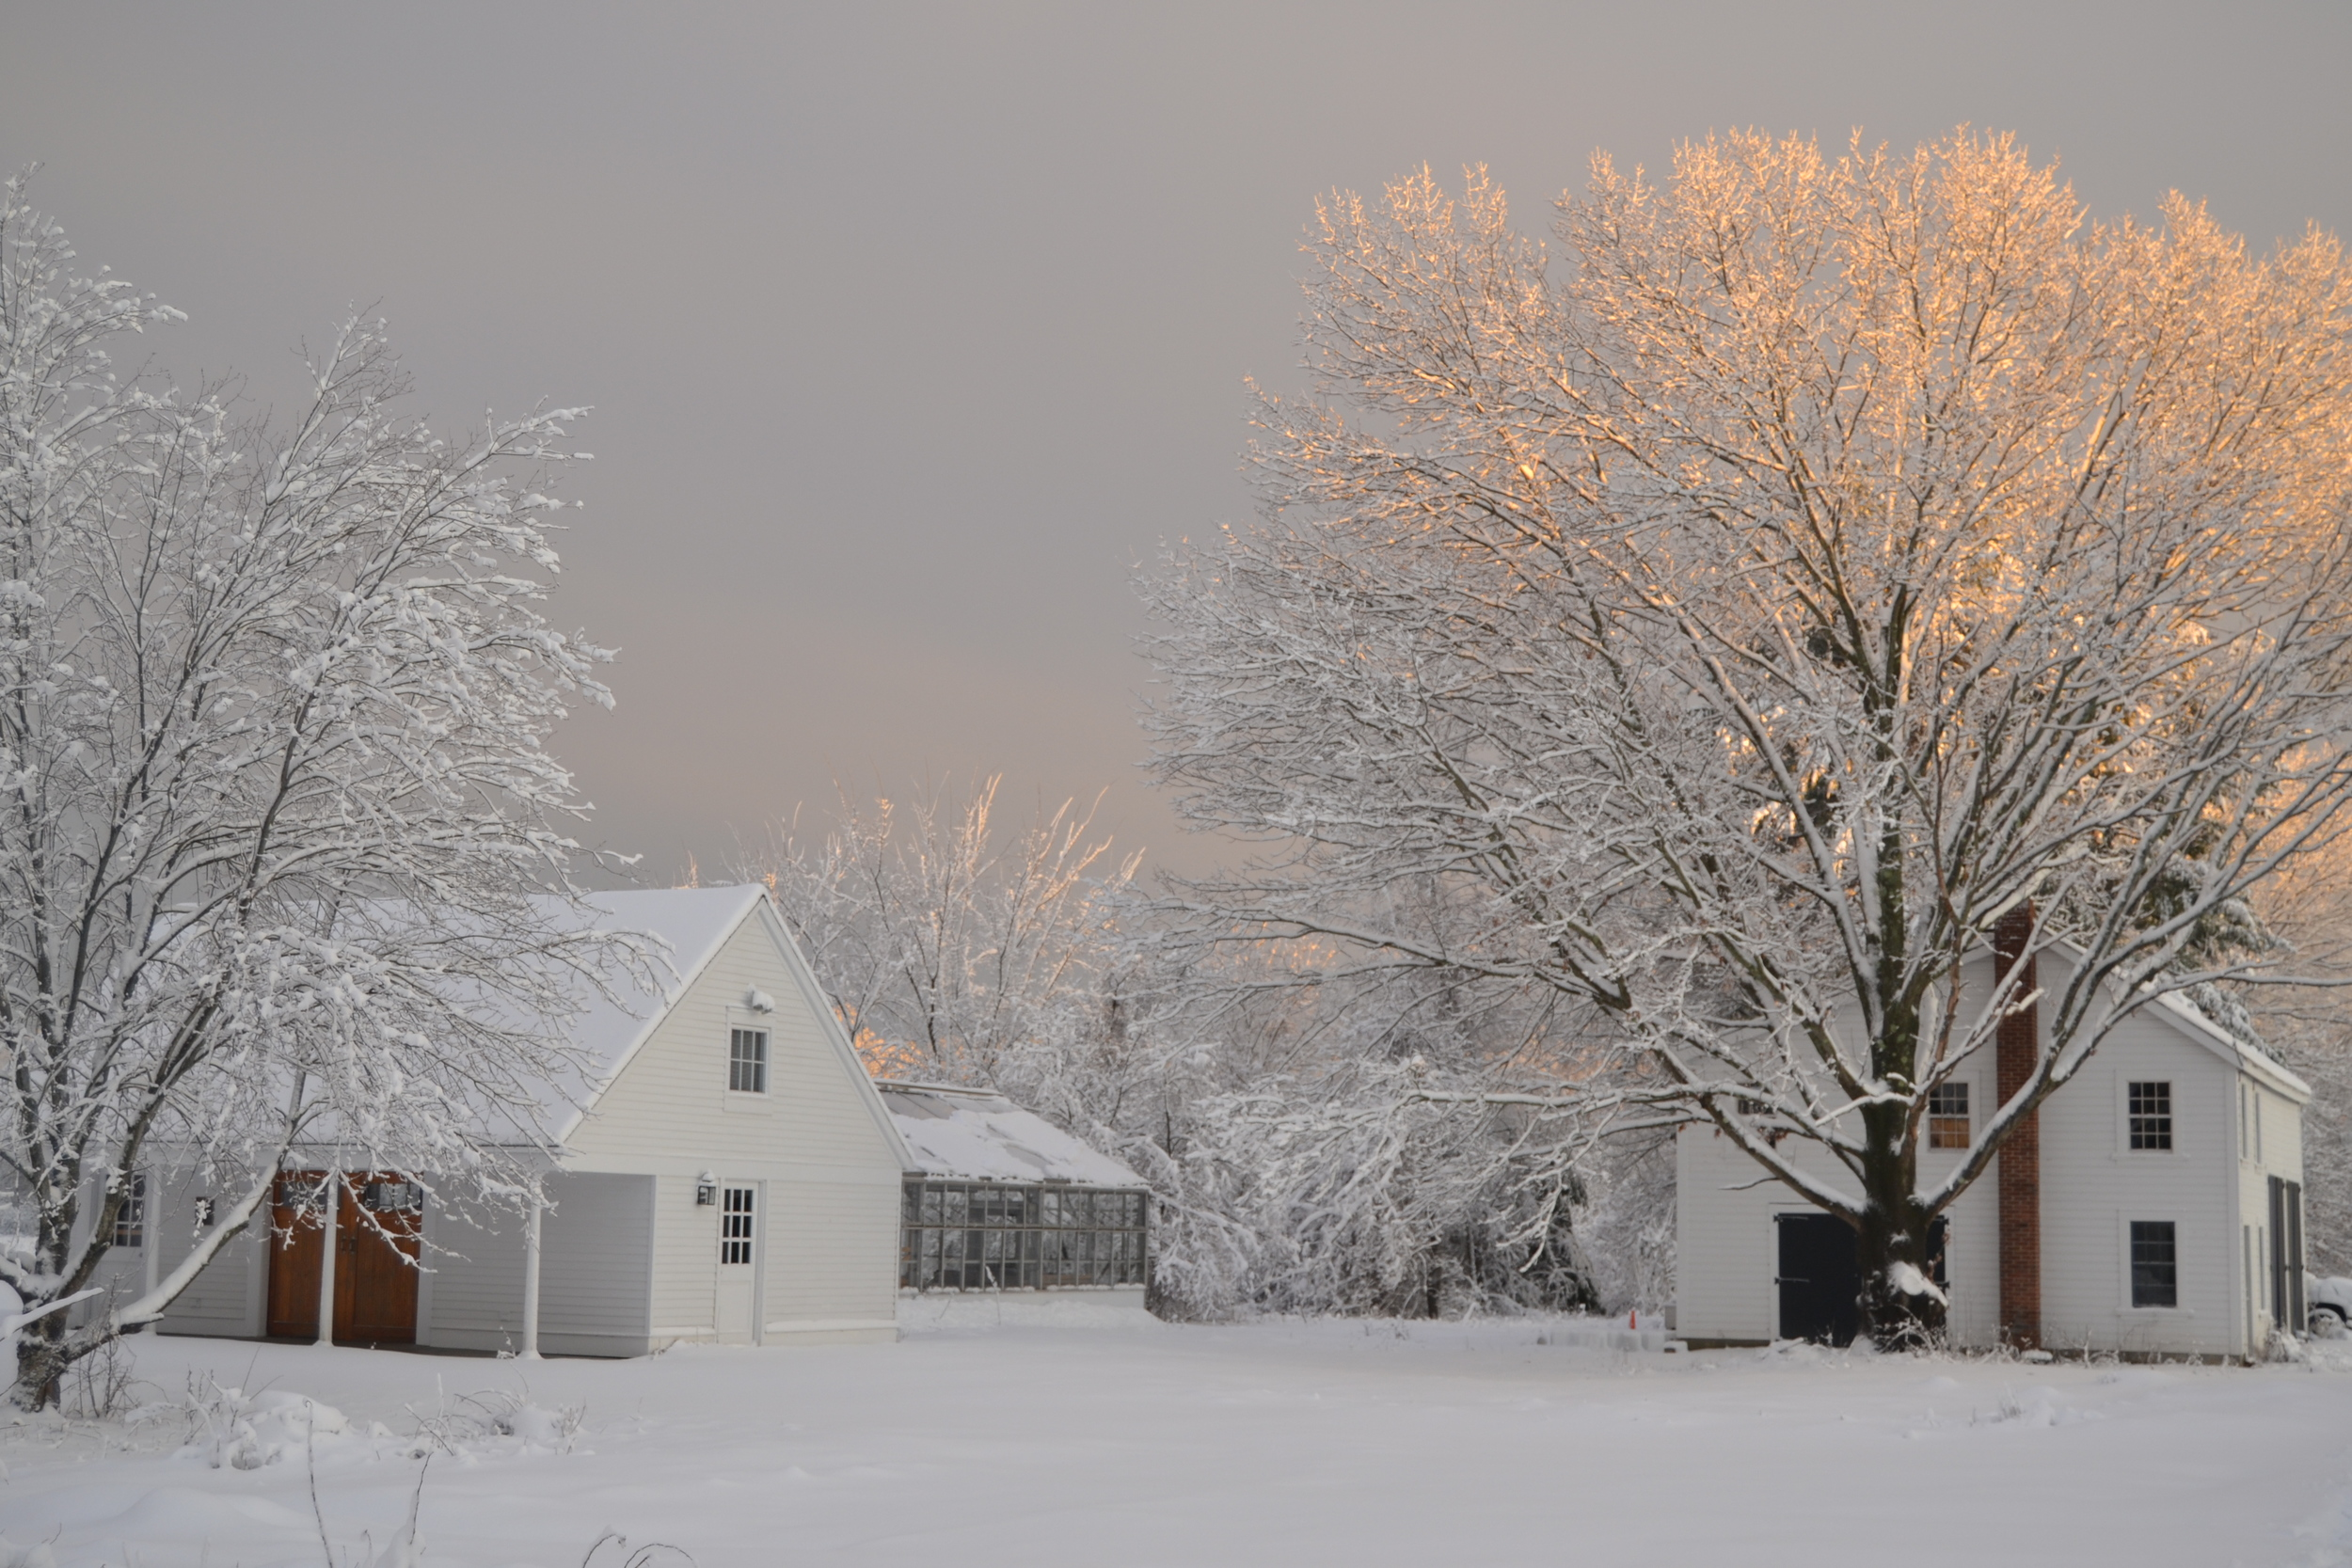 After last Friday's snow storm.